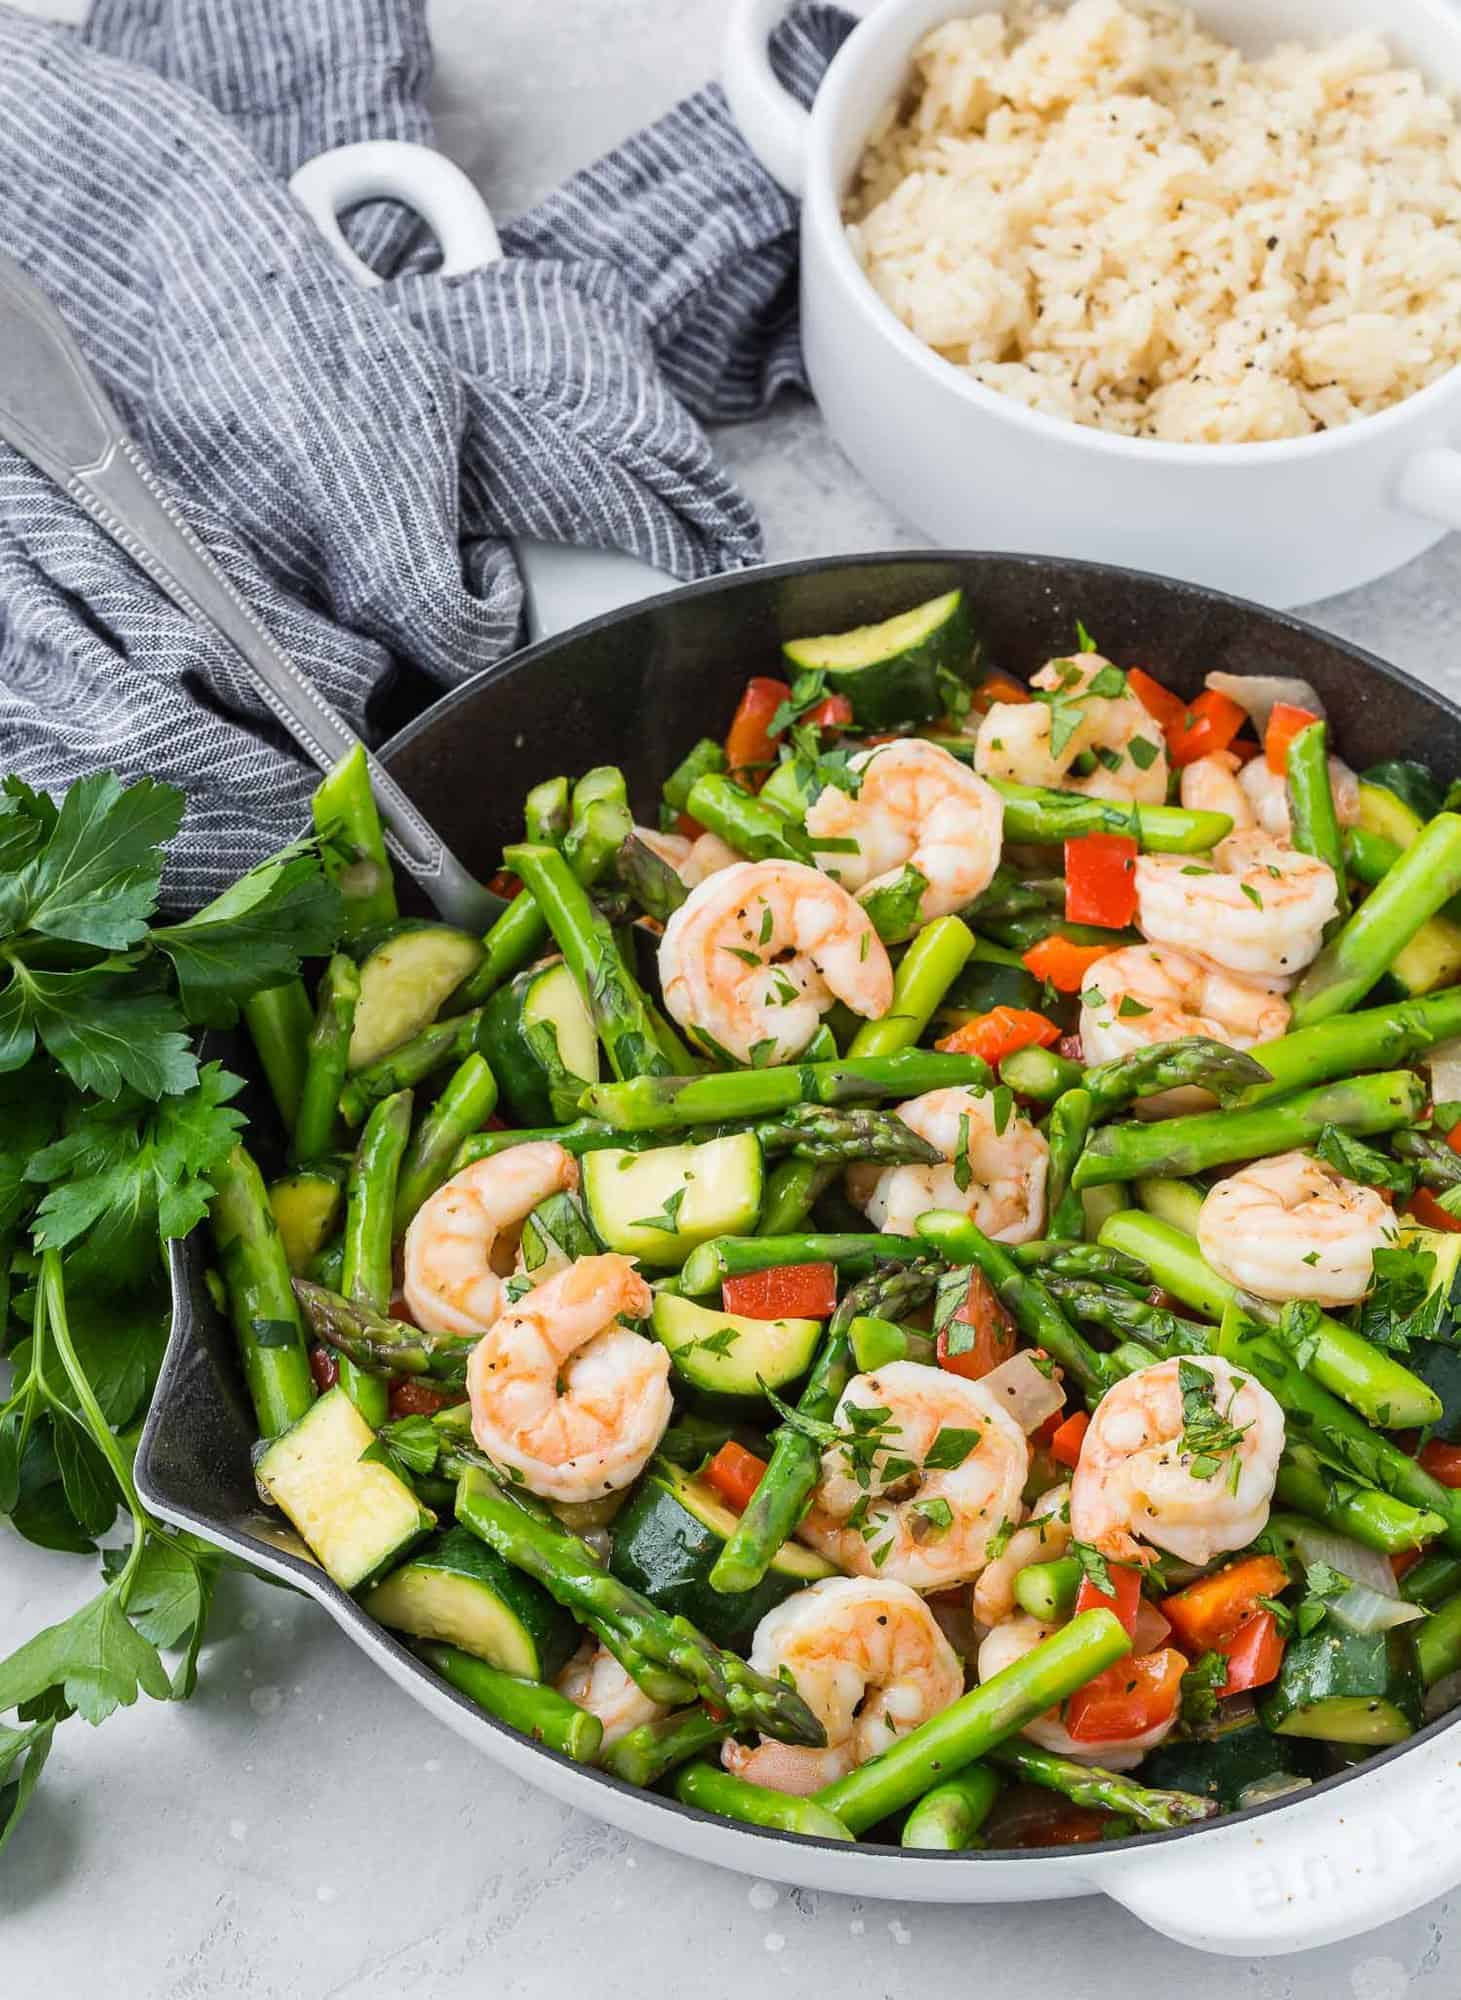 Shrimp stir fry in a white skillet, cooked rice in the background.